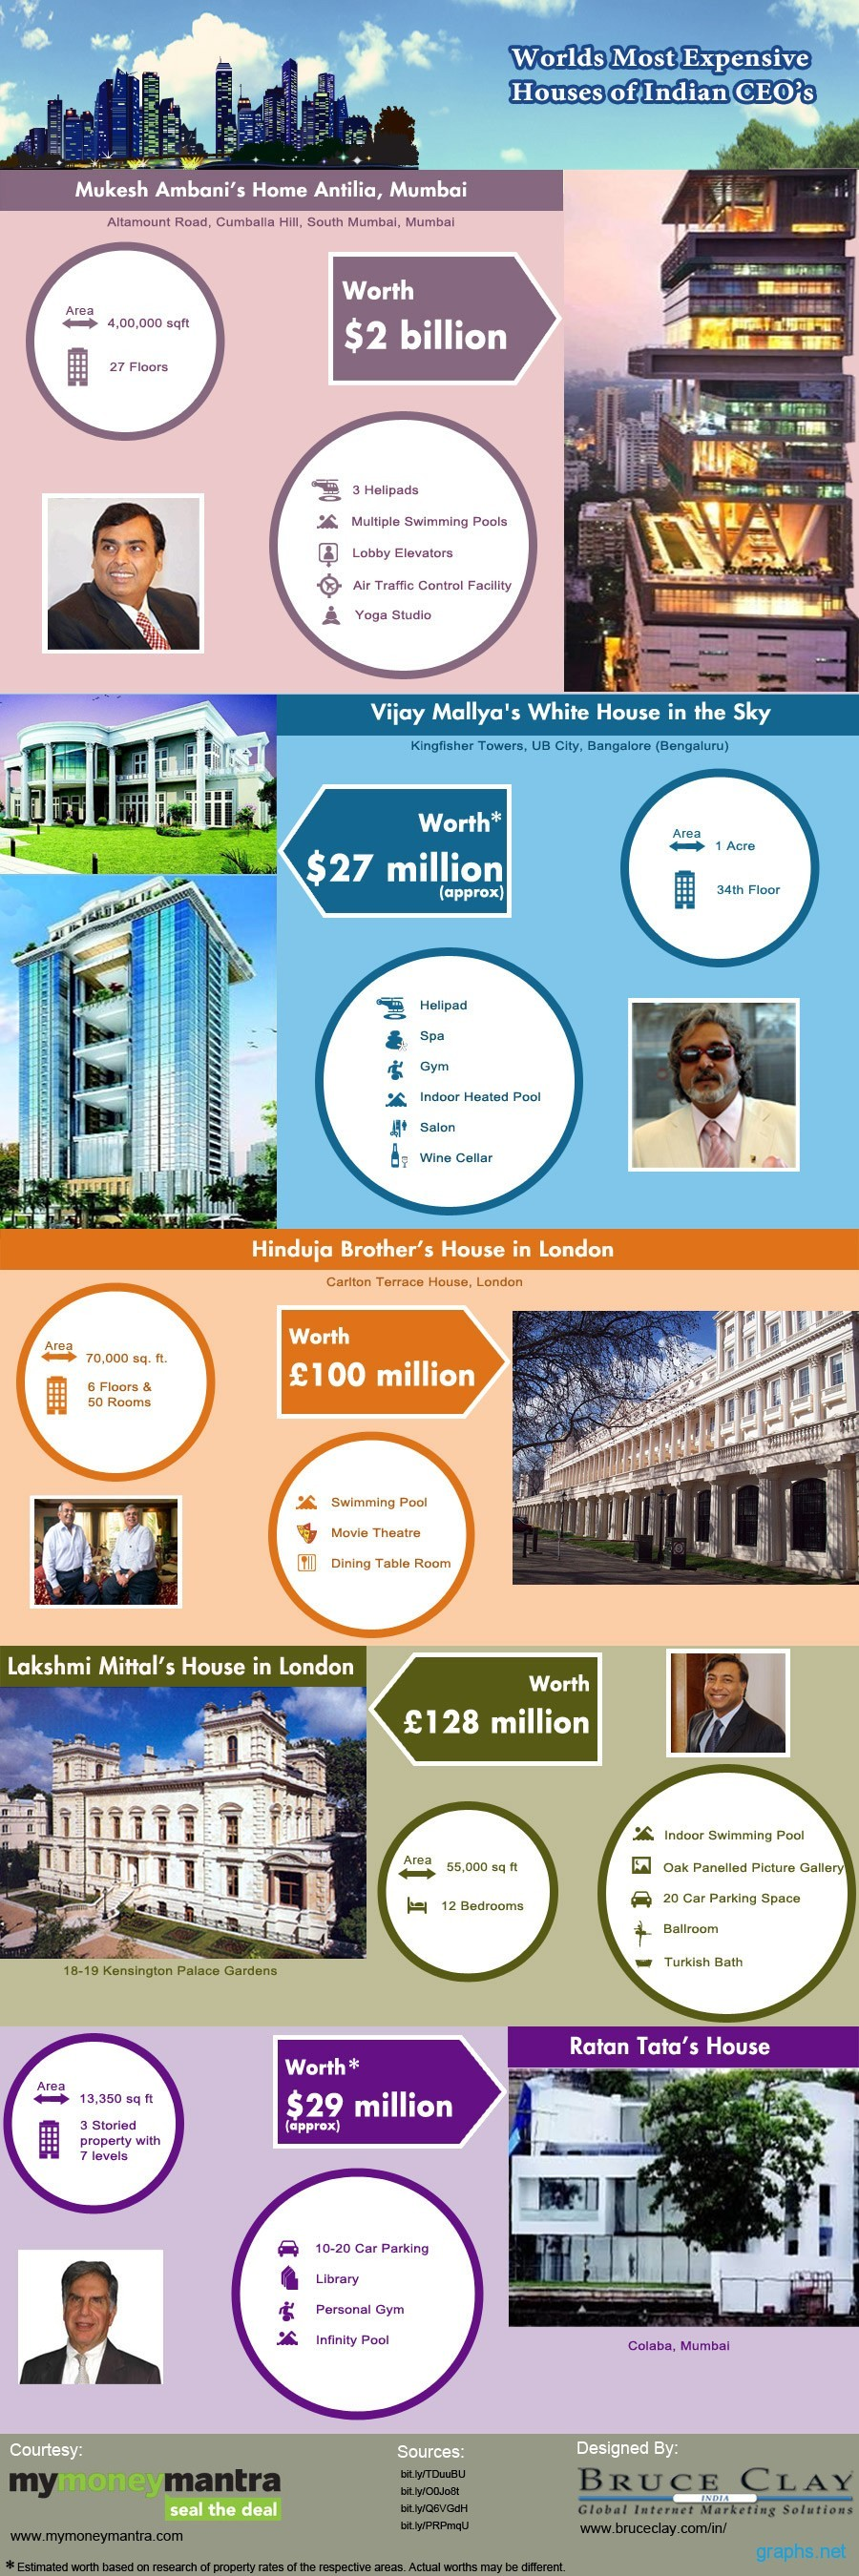 Most Expensive Houses India